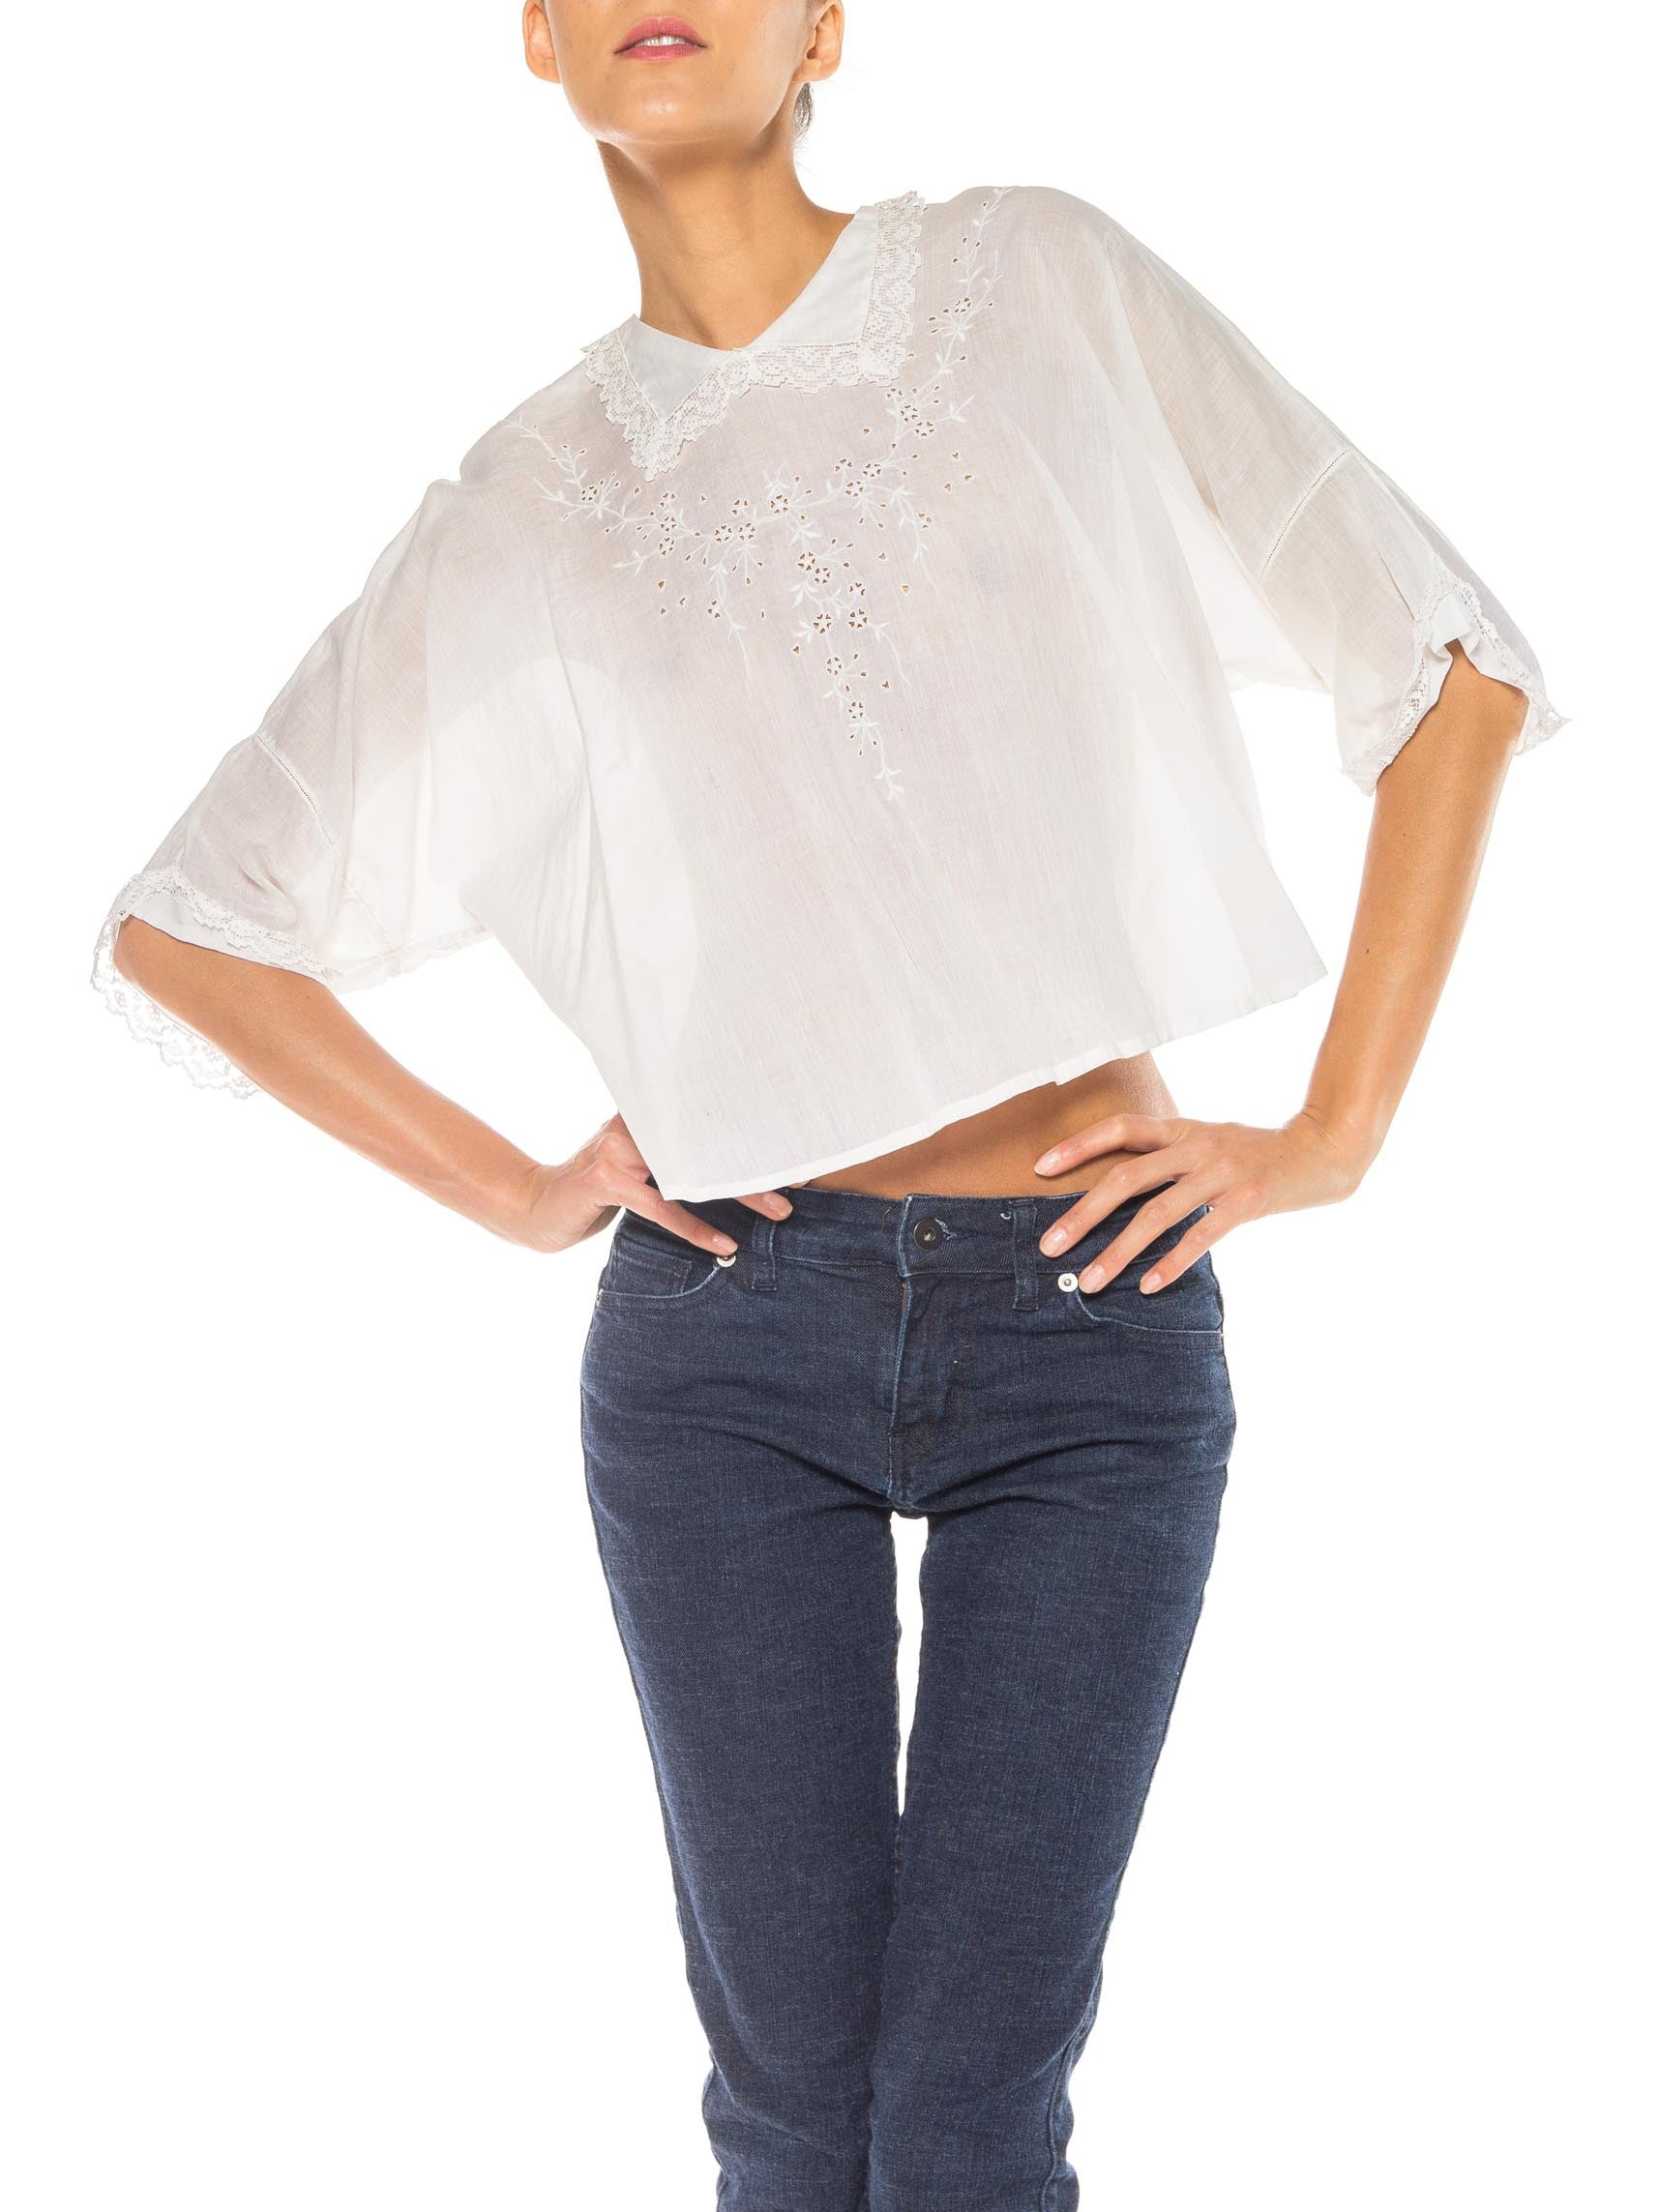 Edwardian White Cotton Voile Entirely Hand-Sewn & Embroidered Oversized Blouse With Cute Collar